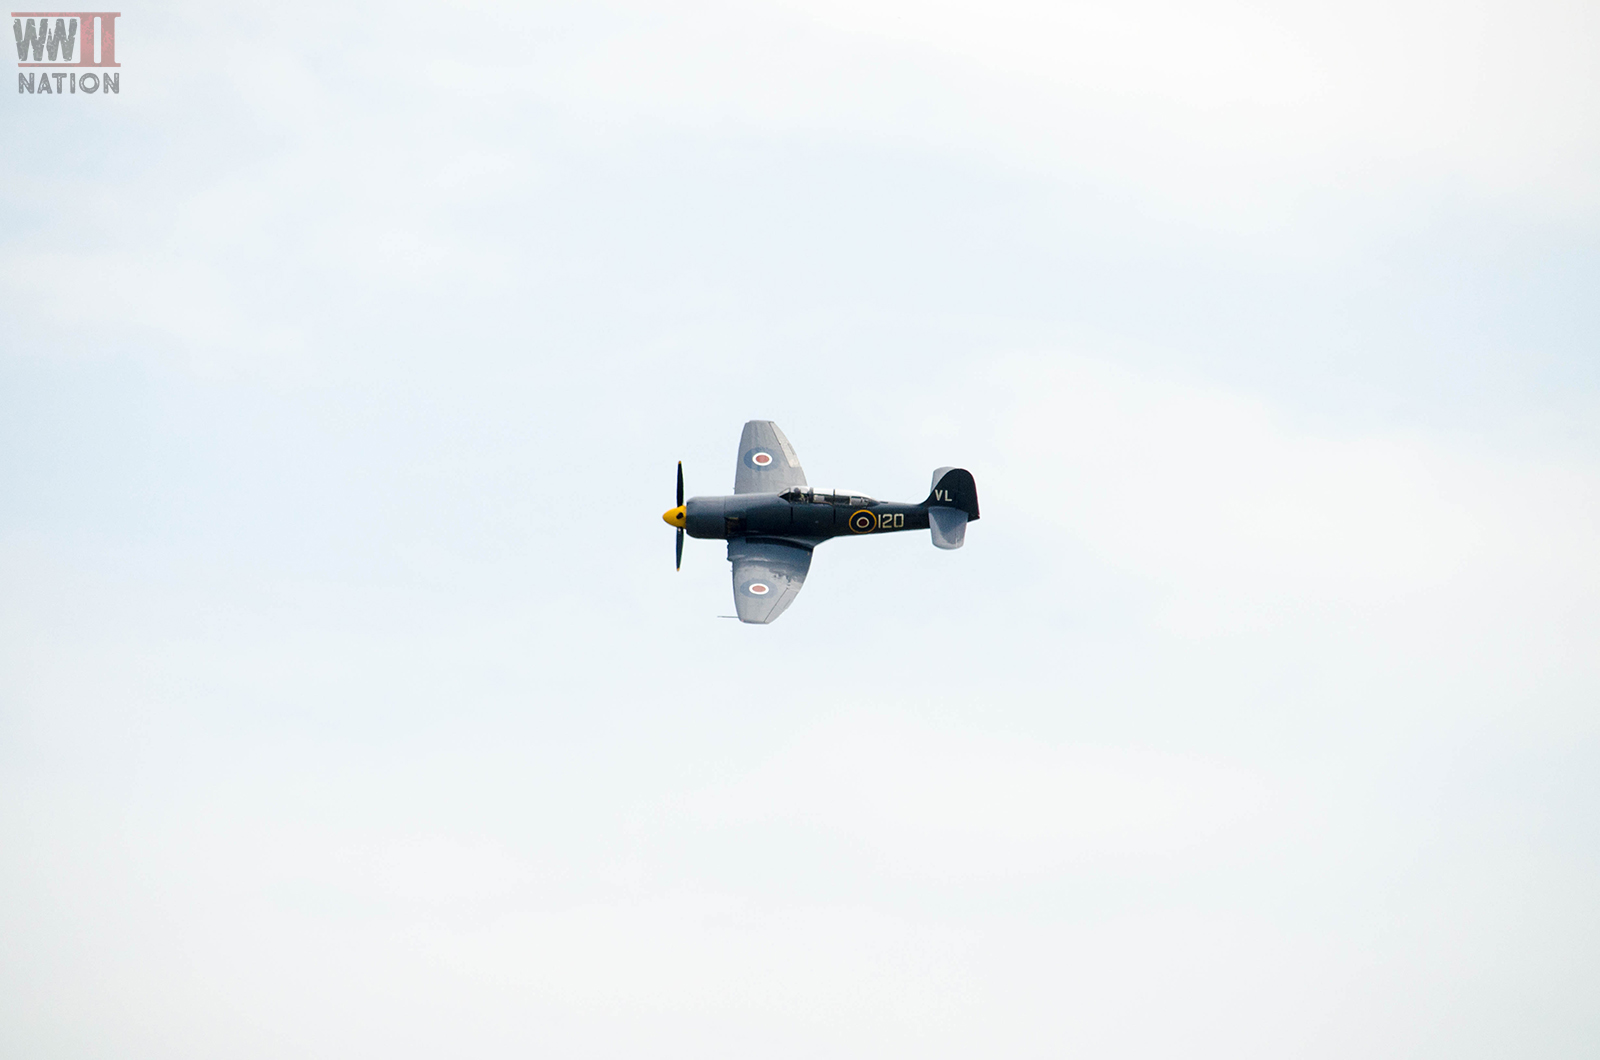 Hawker Sea Fury at the Chalke Valley History Festival 2018 Eight